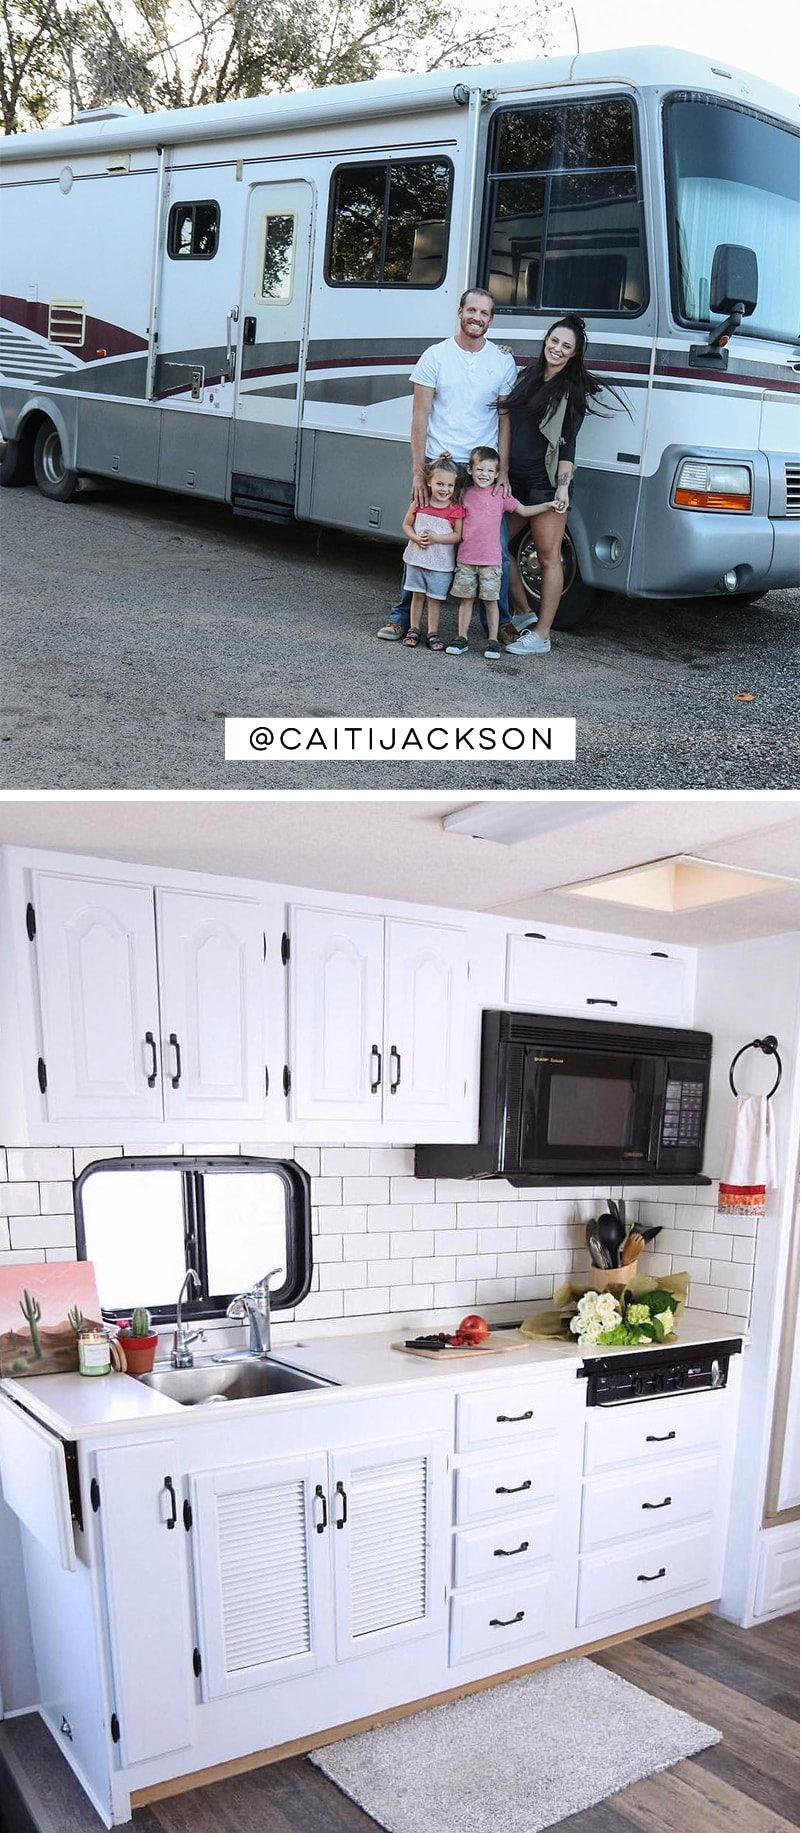 Tour this RV renovated for a family of 4 from @CaitiJackson! #rvreno #rvlife #camperremodel